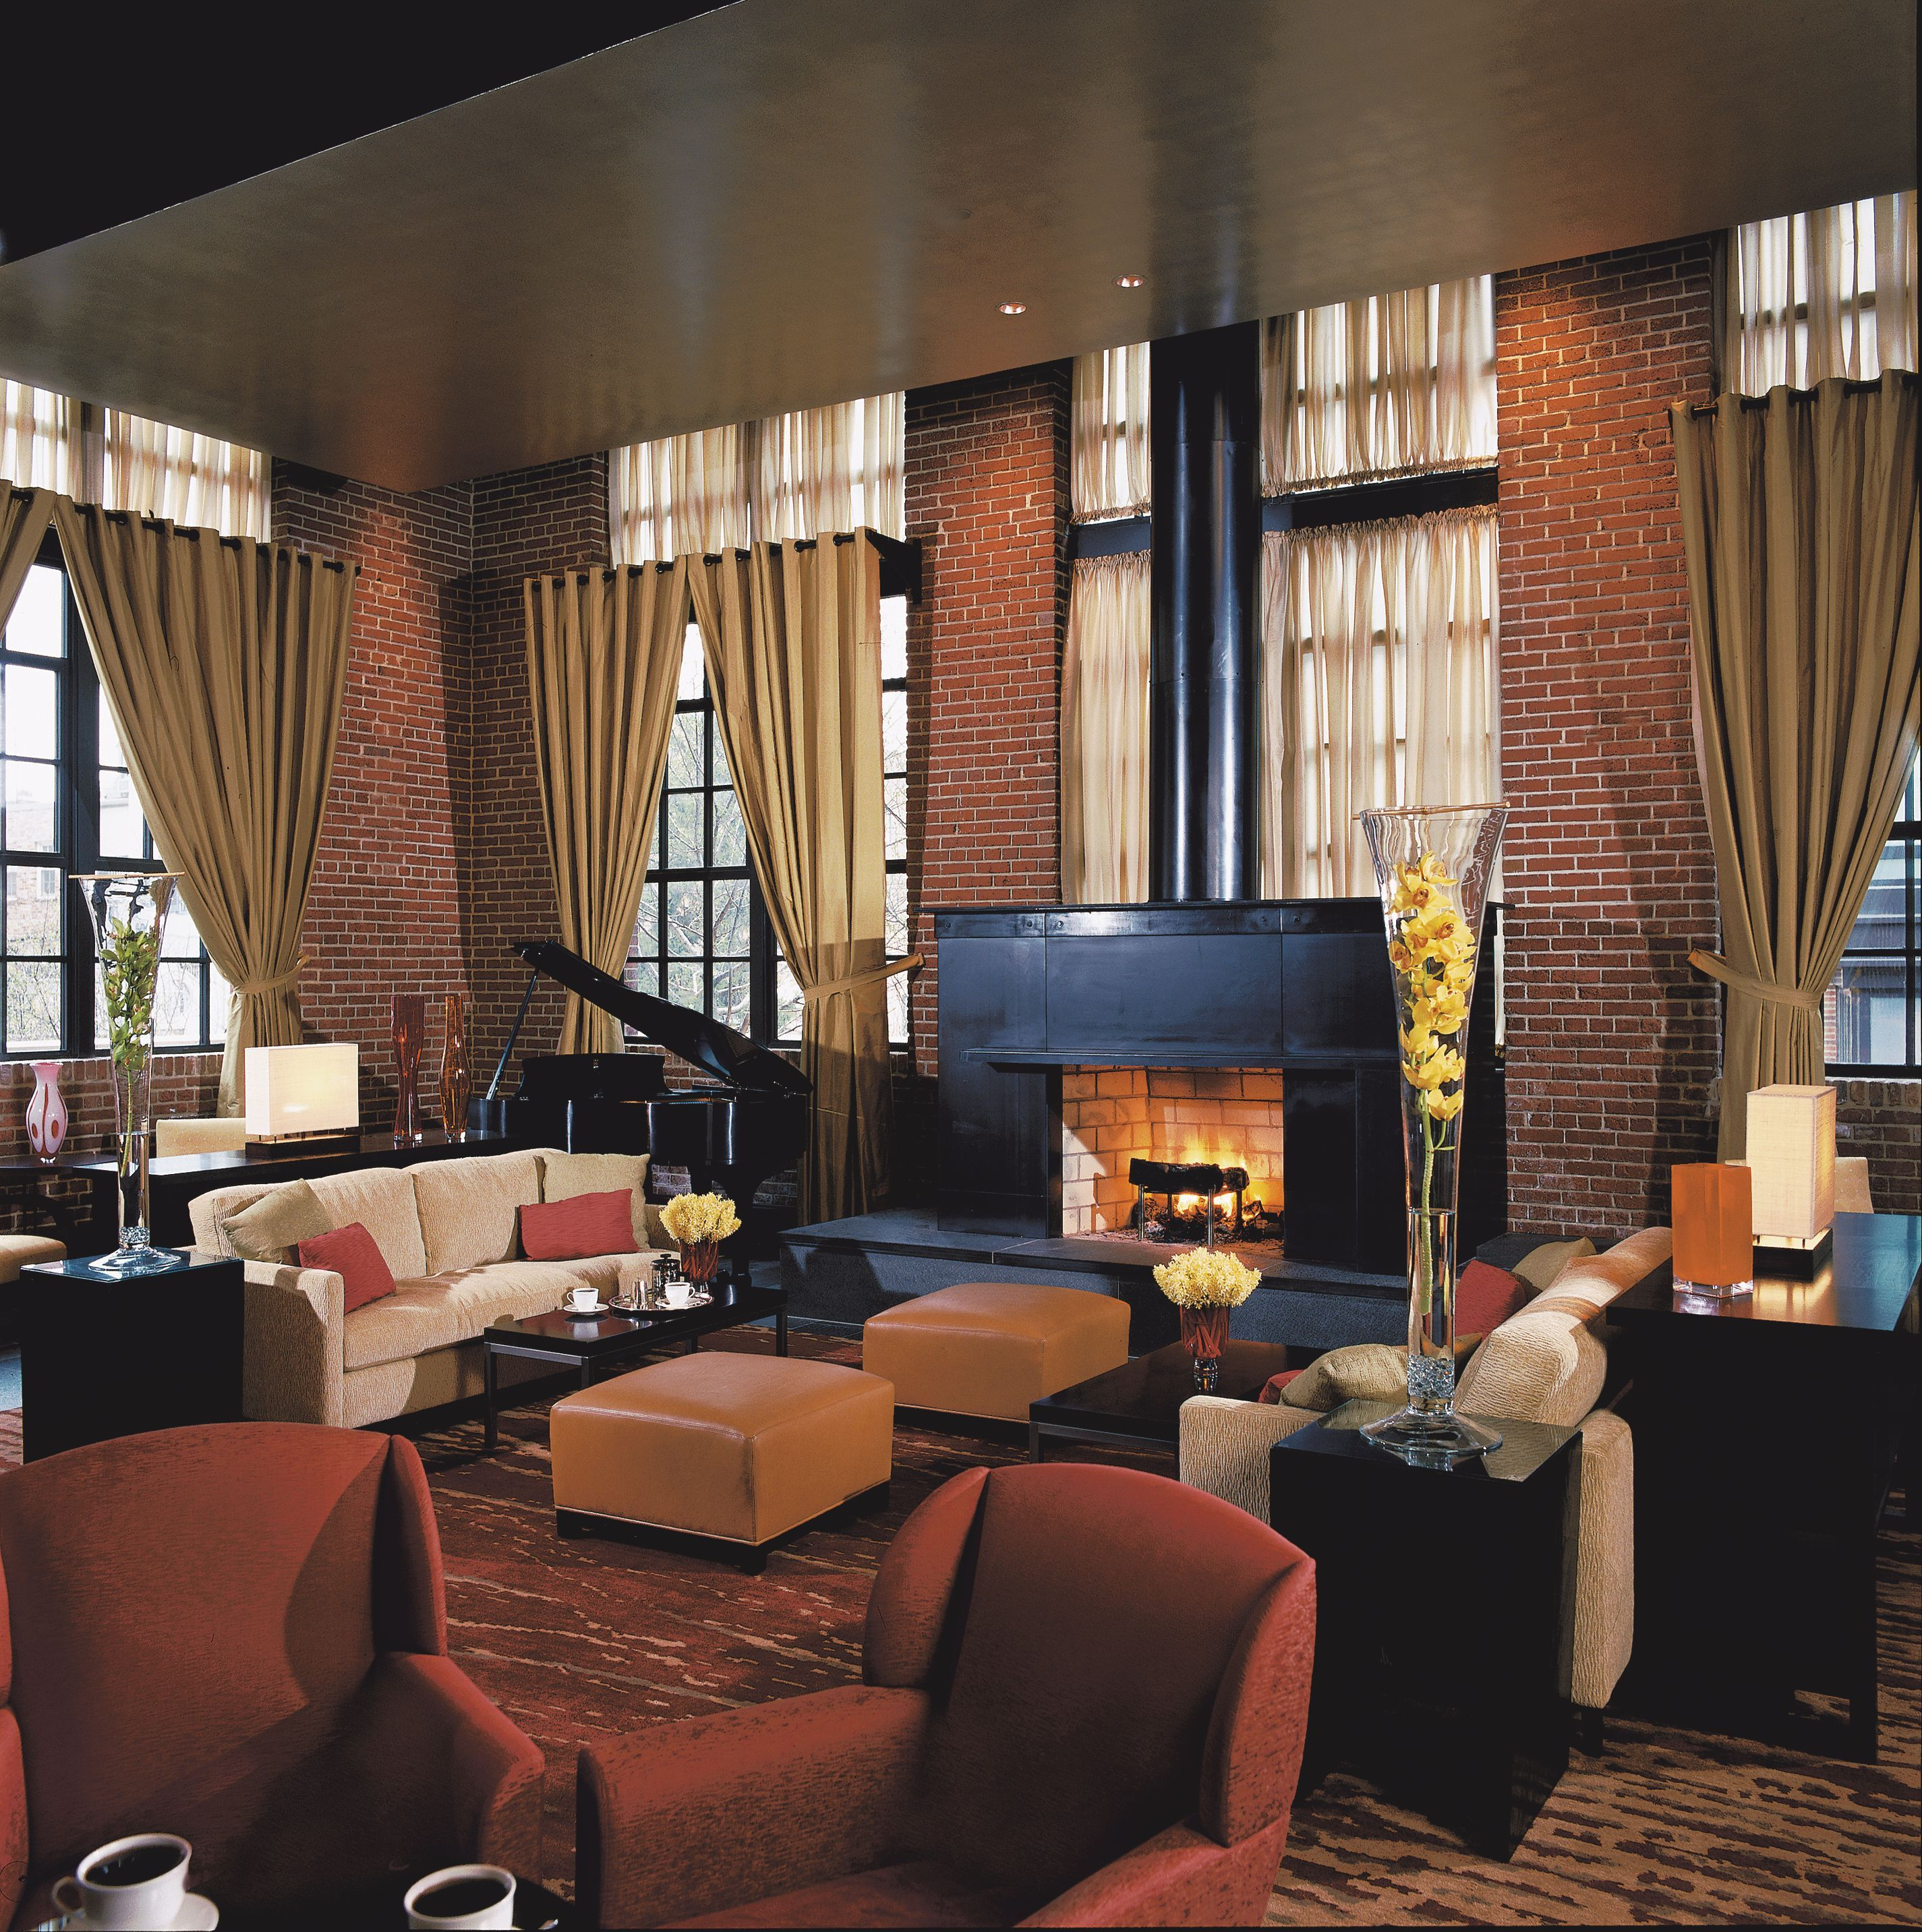 Most Romantic Hotel Fireplaces Ritz Carlton Hotel Dc Hotel